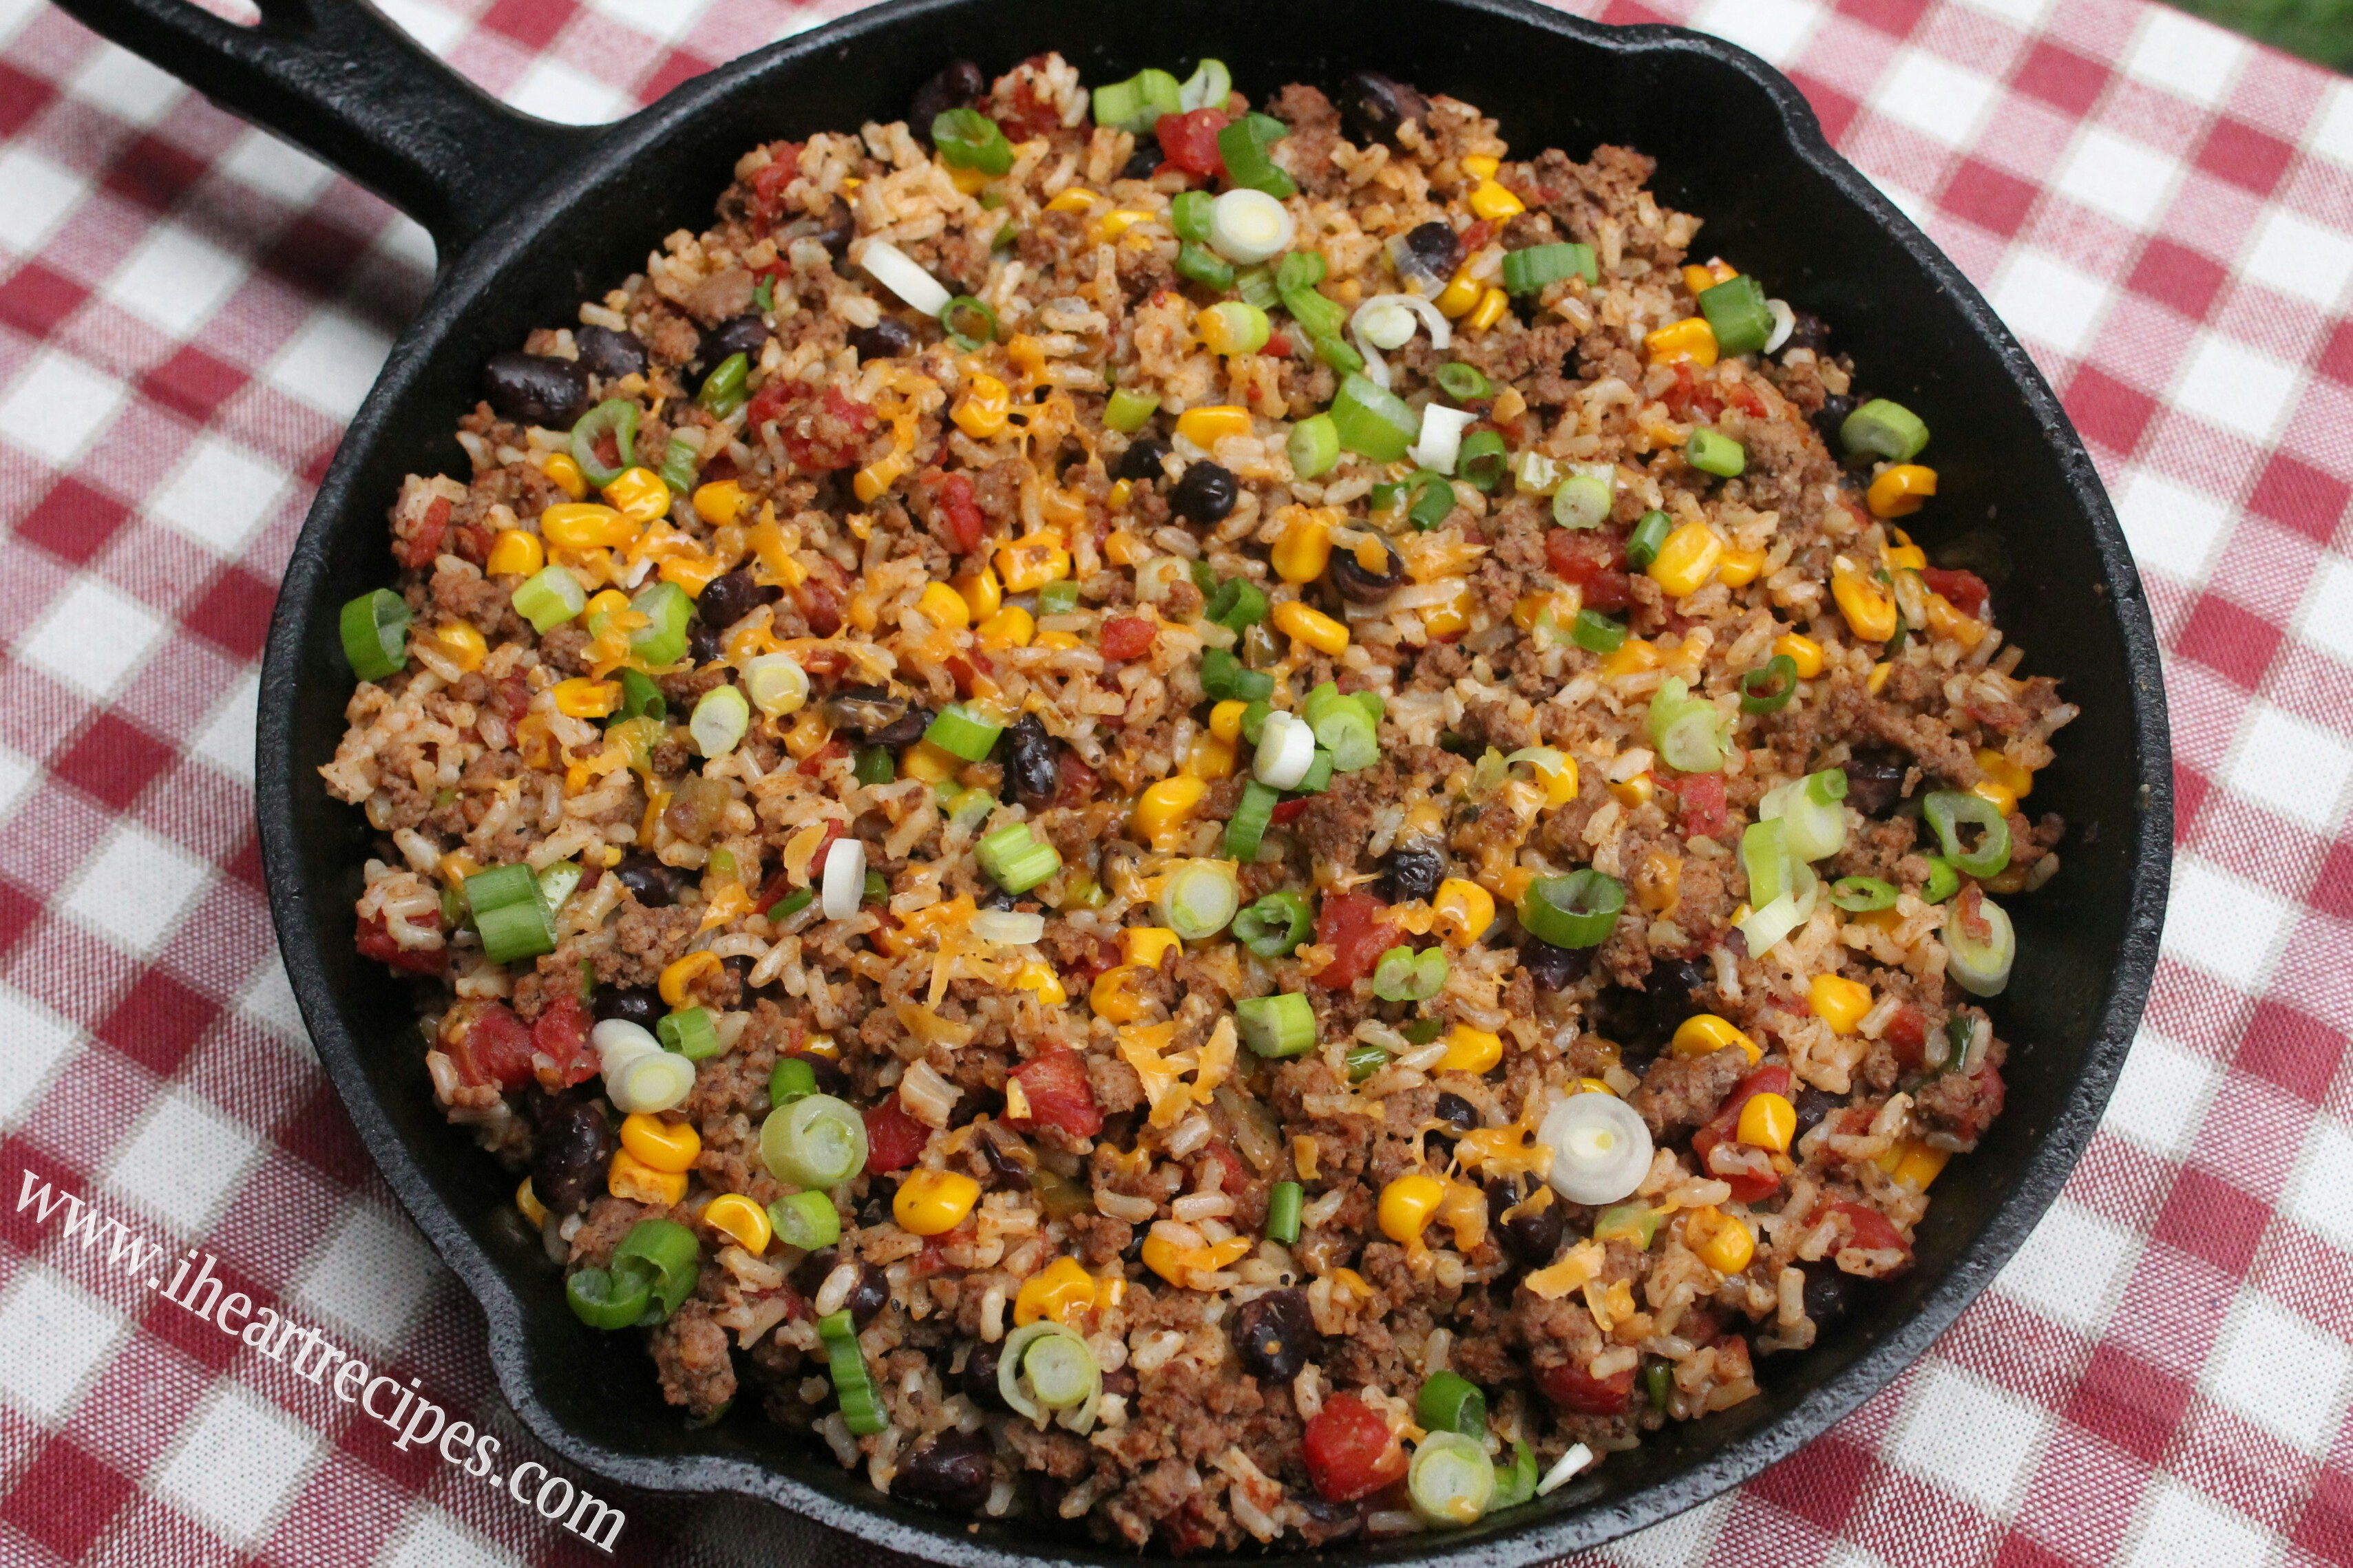 Eye Easy Tex Mex Ground Beef Skillet Dinner Made Under Tex Mex Beef Skillet I Heart Recipes Keto Recipe Ground Beef Cheese Keto Recipe Ground Beef Instant Pot A Quick nice food Keto Recipes Ground Beef